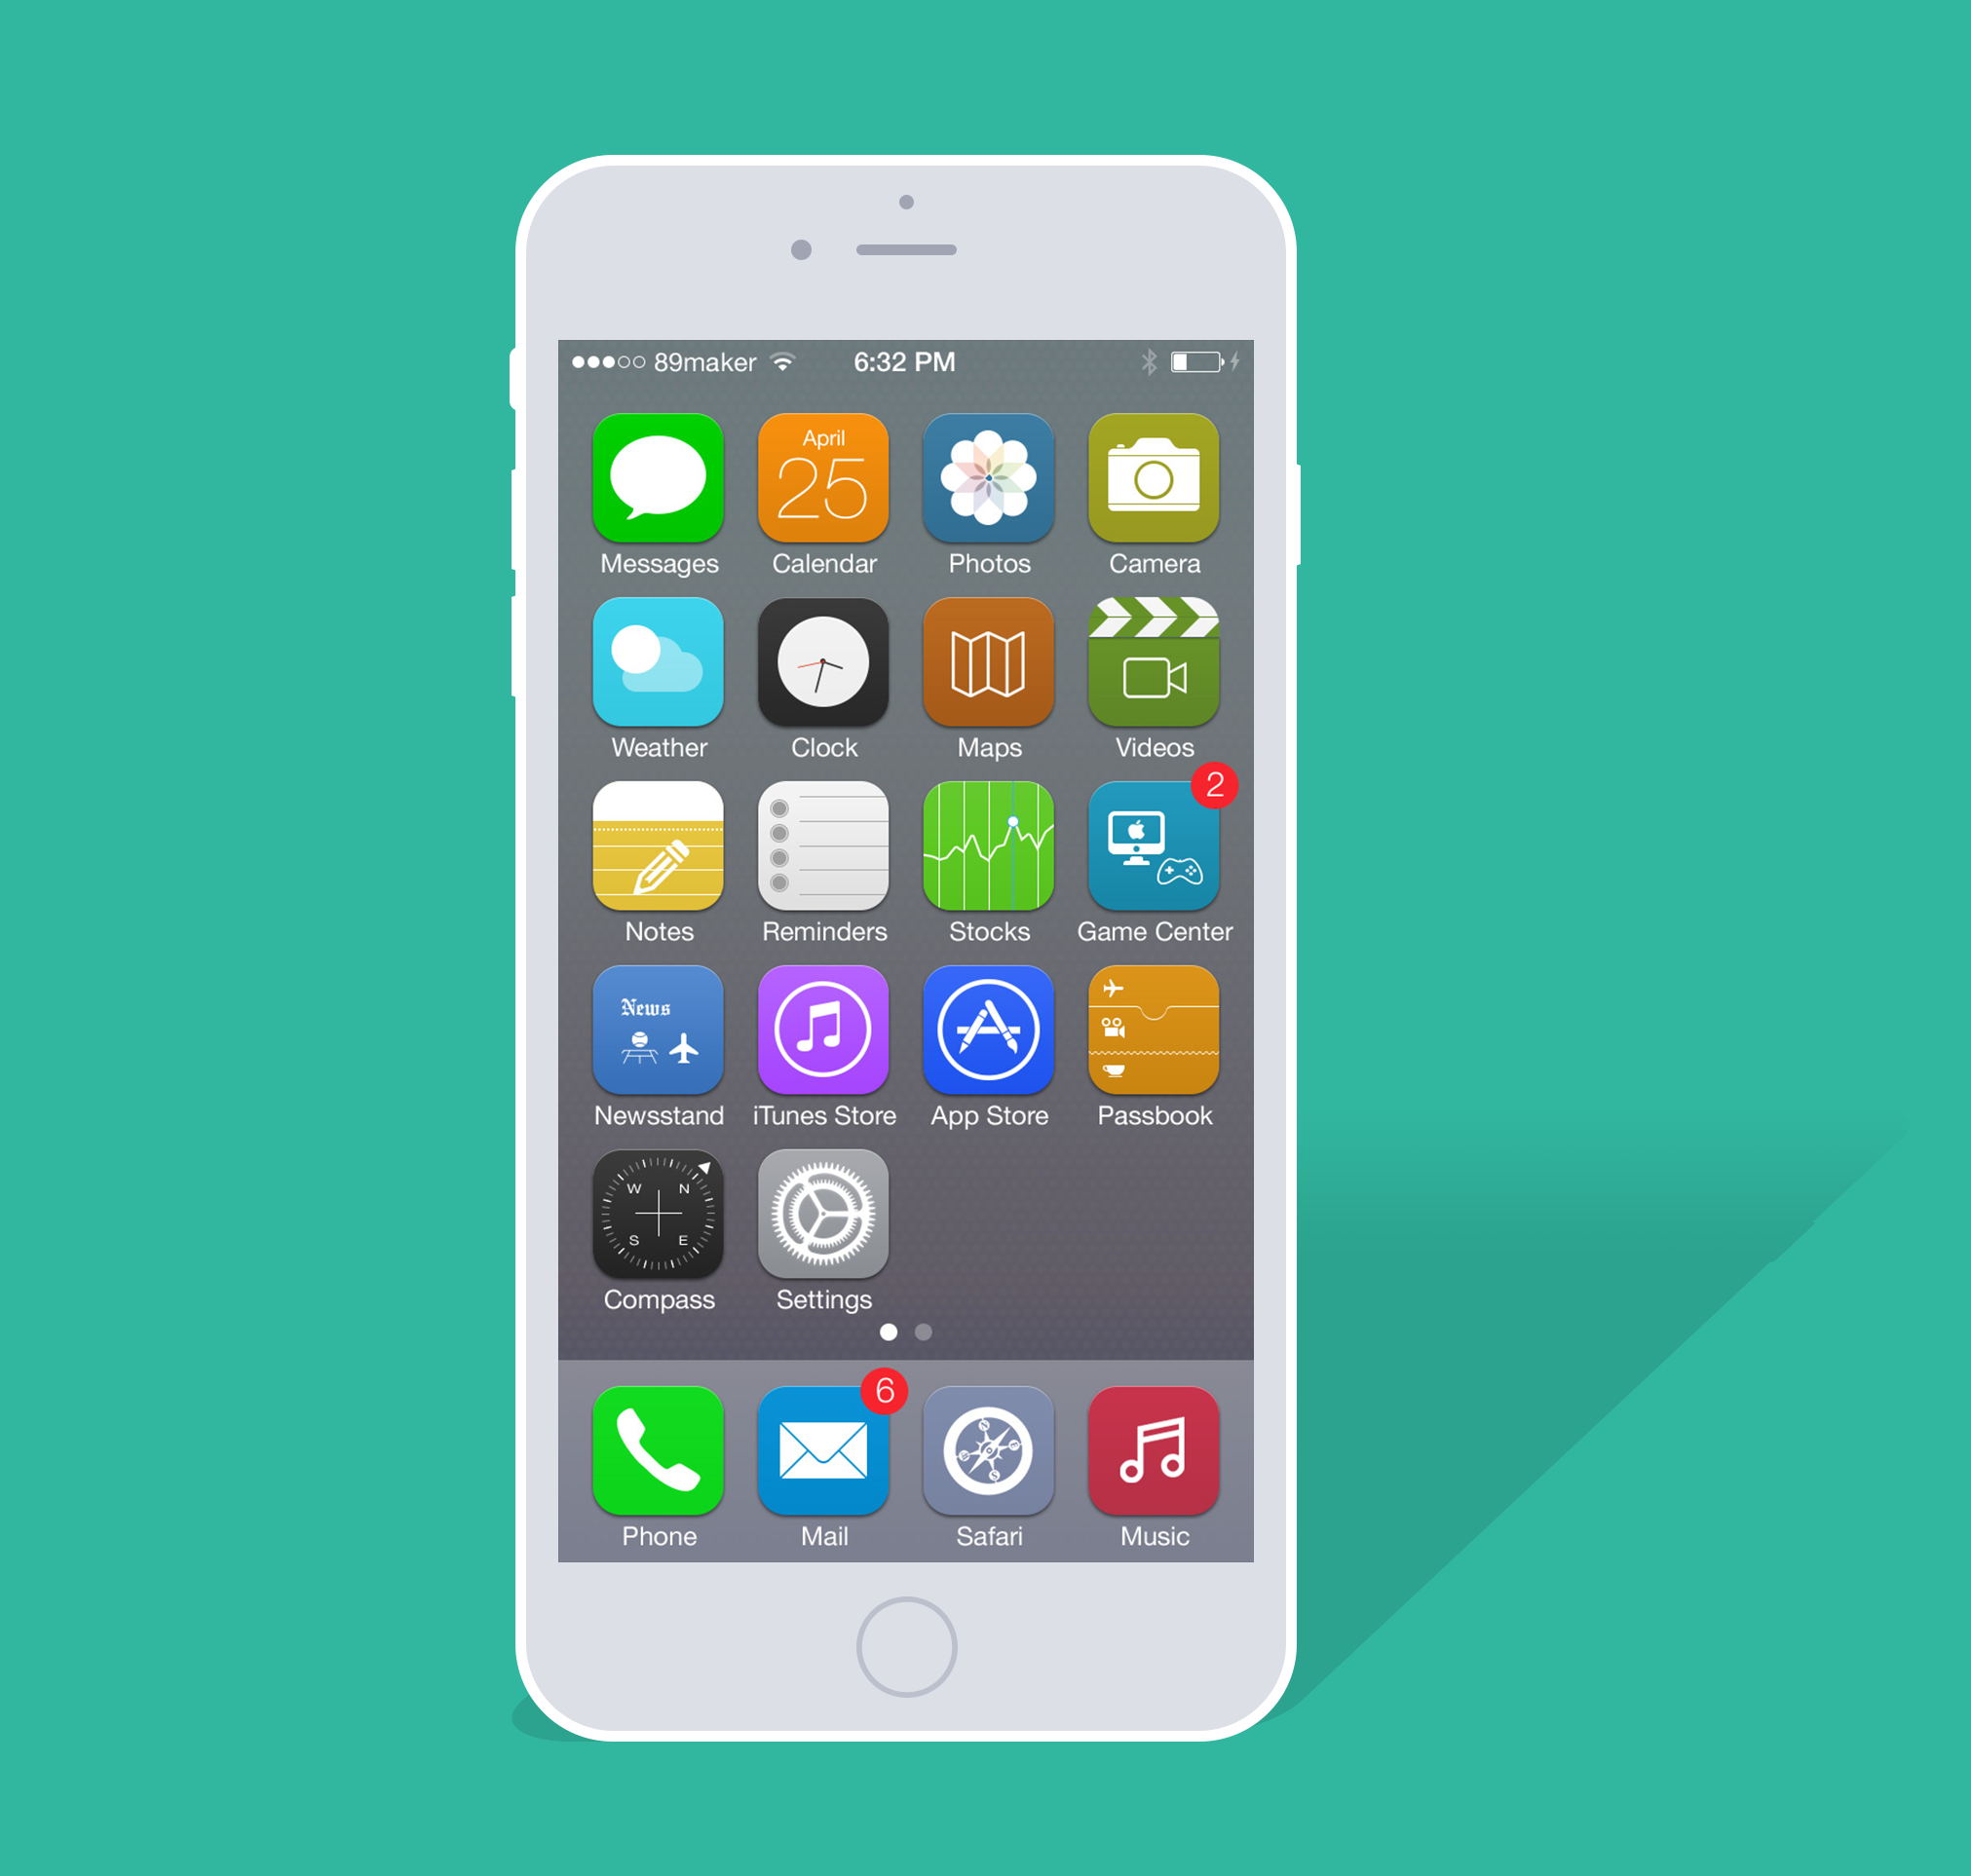 Pin by DaiNB on Newest Flat Design iOS apps